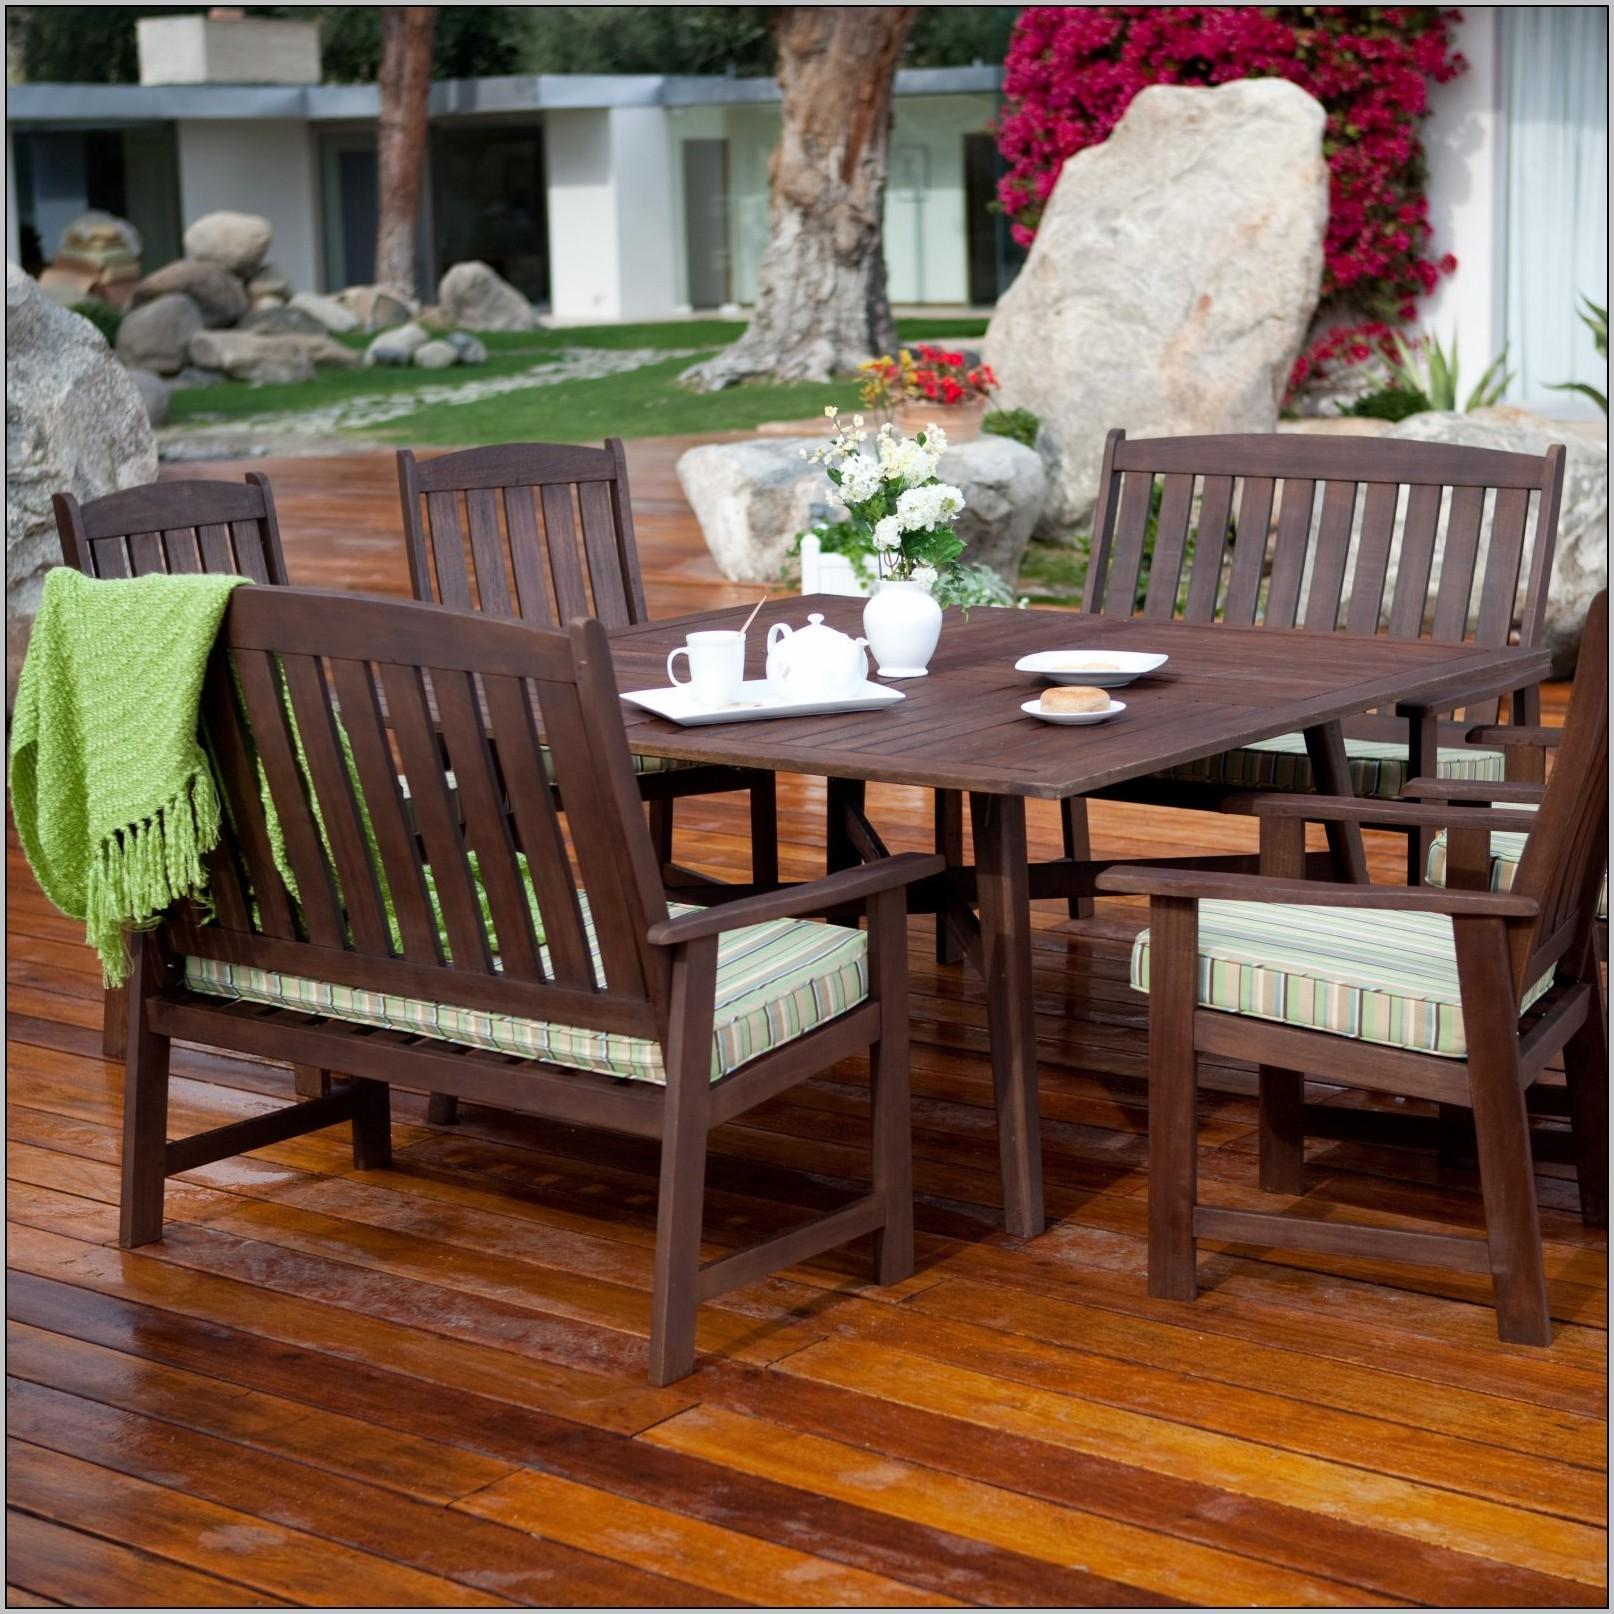 Diy Wood Patio Furniture Patios Home Decorating Ideas